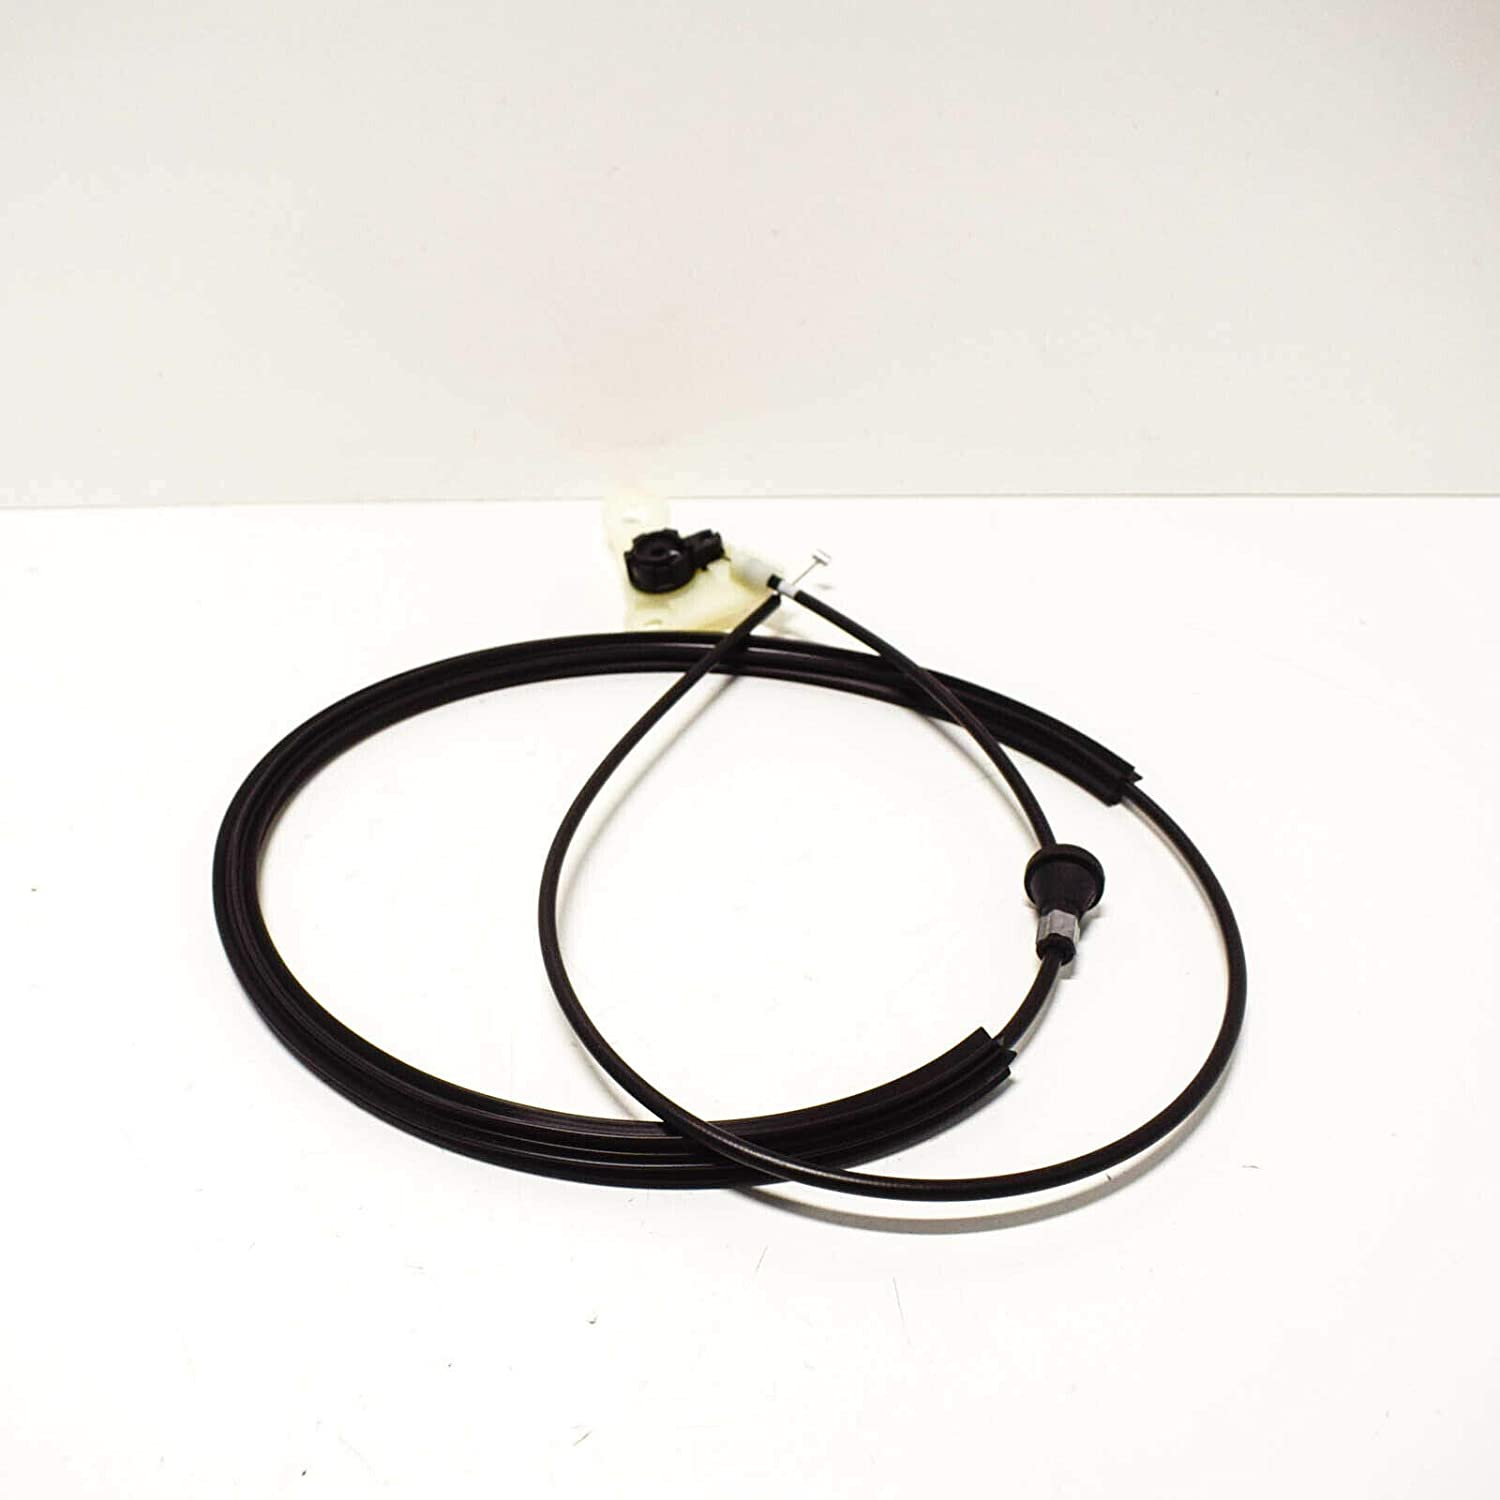 GTV INVESTMENTS 3 E36 Bonnet Hood Release Lid Lock Cable 51238135822 NEW GENUINE